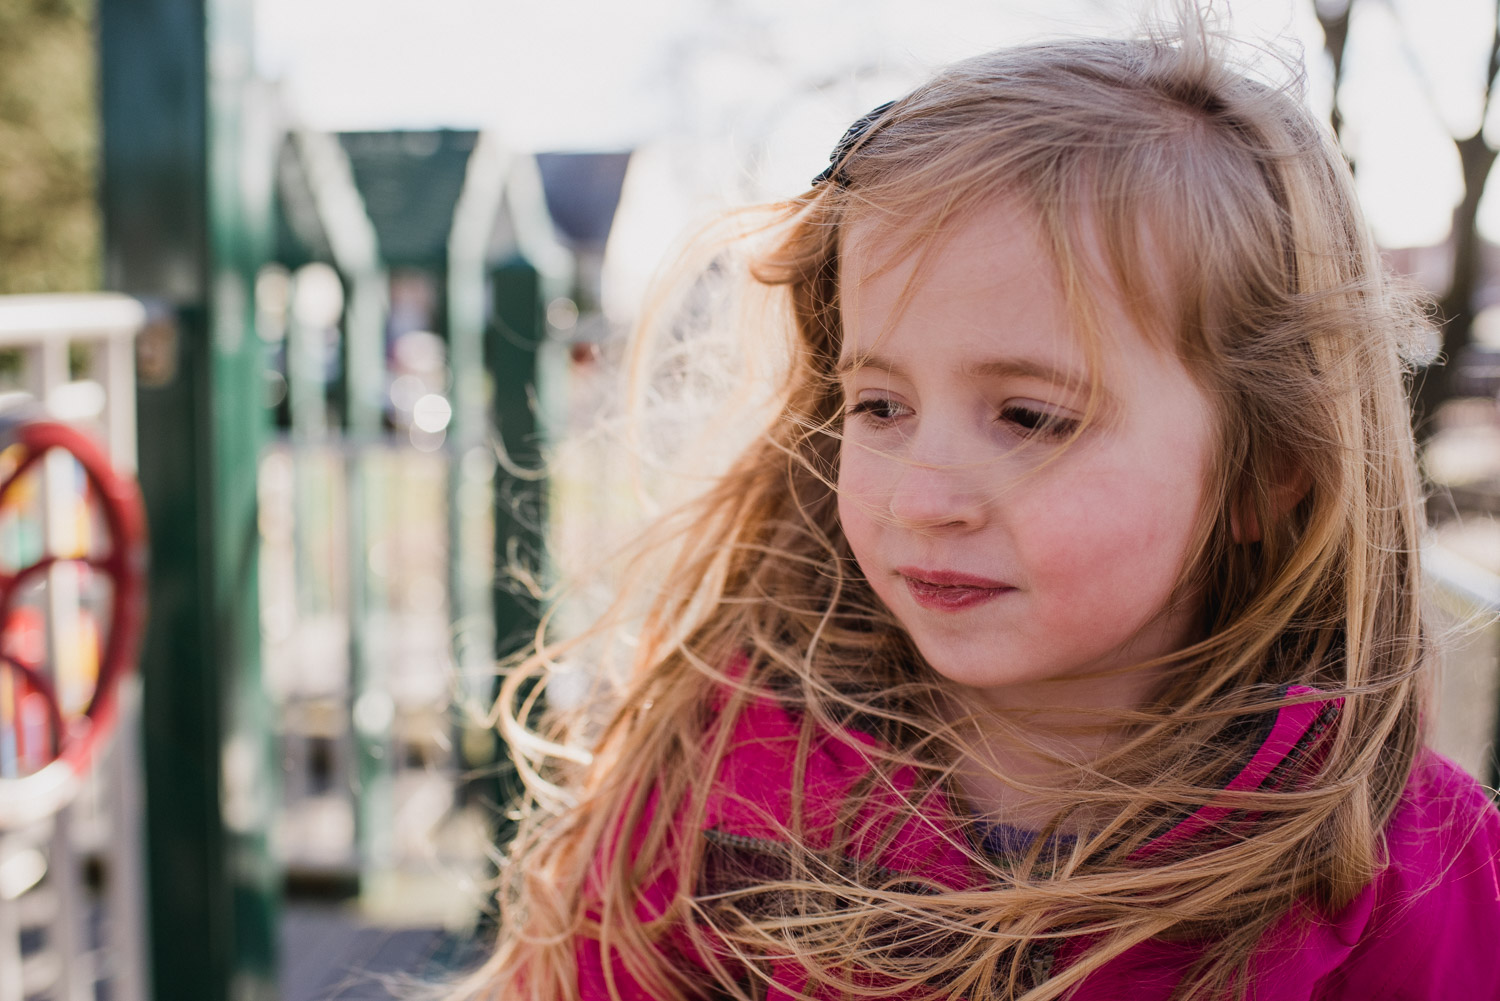 A little girl at the park on a windy day.